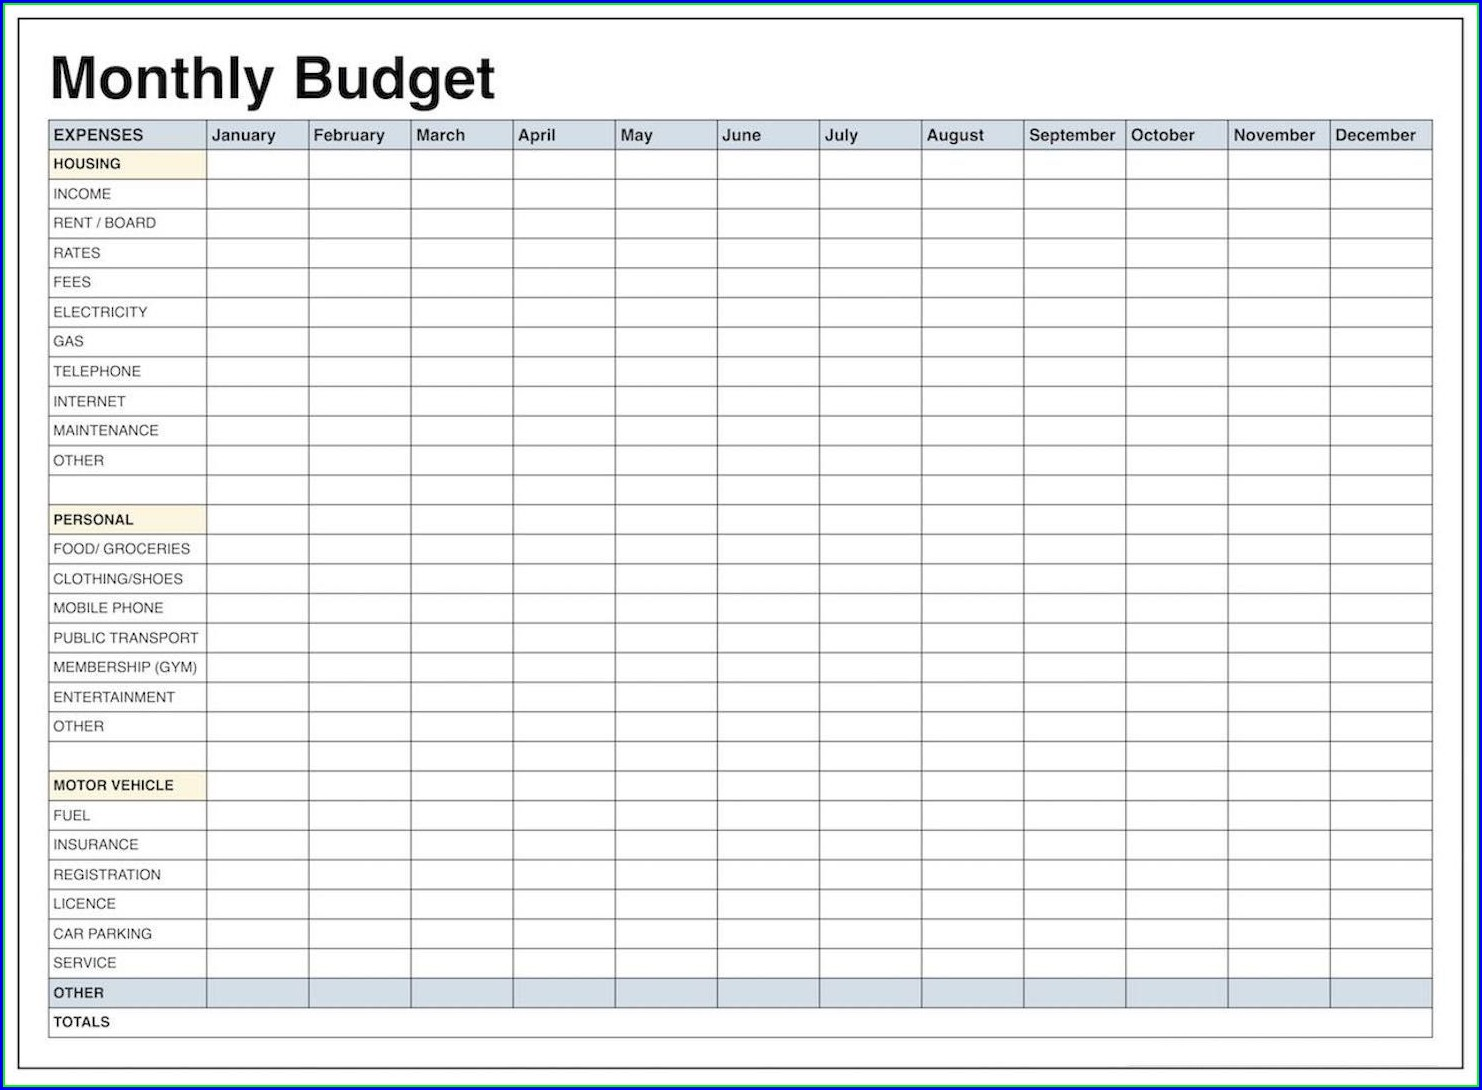 Edward Jones Monthly Budget Worksheet Excel